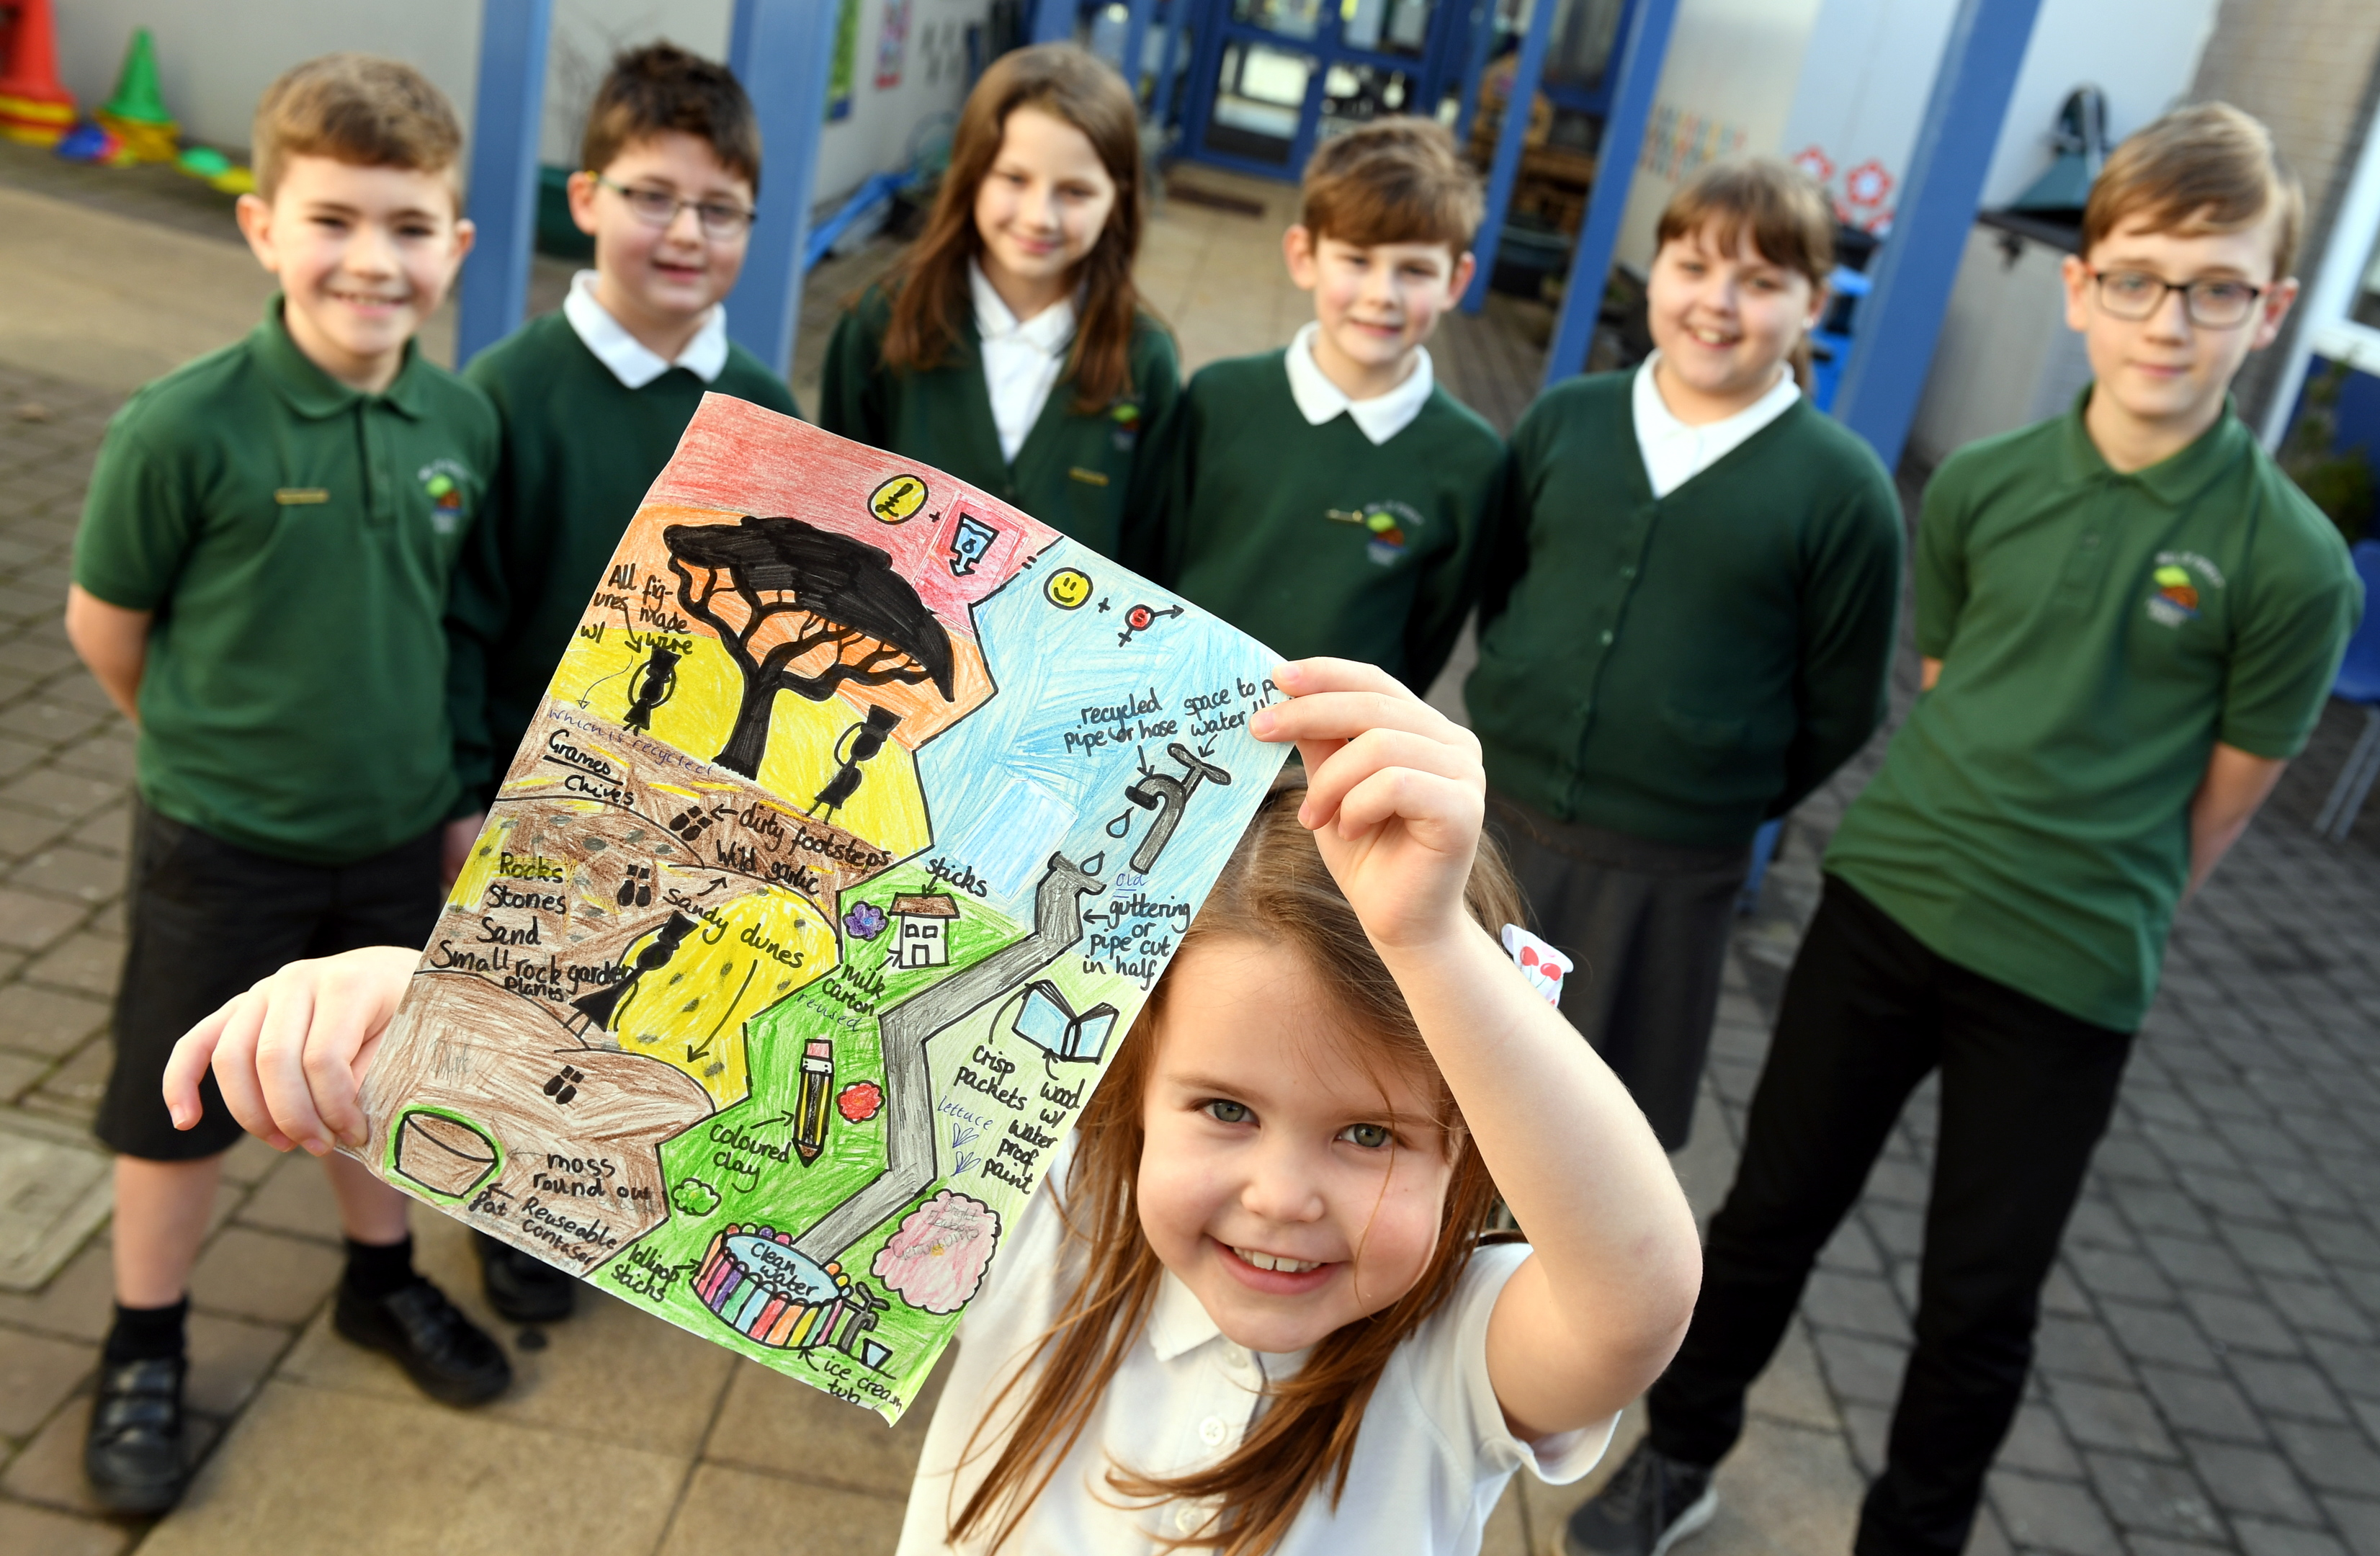 Their creations will be brought to life for display at the Gardening Scotland exhibition in Edinburgh this June.     Pictured - Mill O' Forest pupil Jenna Warden holding their design with fellow pupils L-R Elijah Kriston, Shaun Cadger, Keira Kirk, Harry Middleton, Rhea Walker, Murray Jamieson.    Picture by Kami Thomson    21-02-18